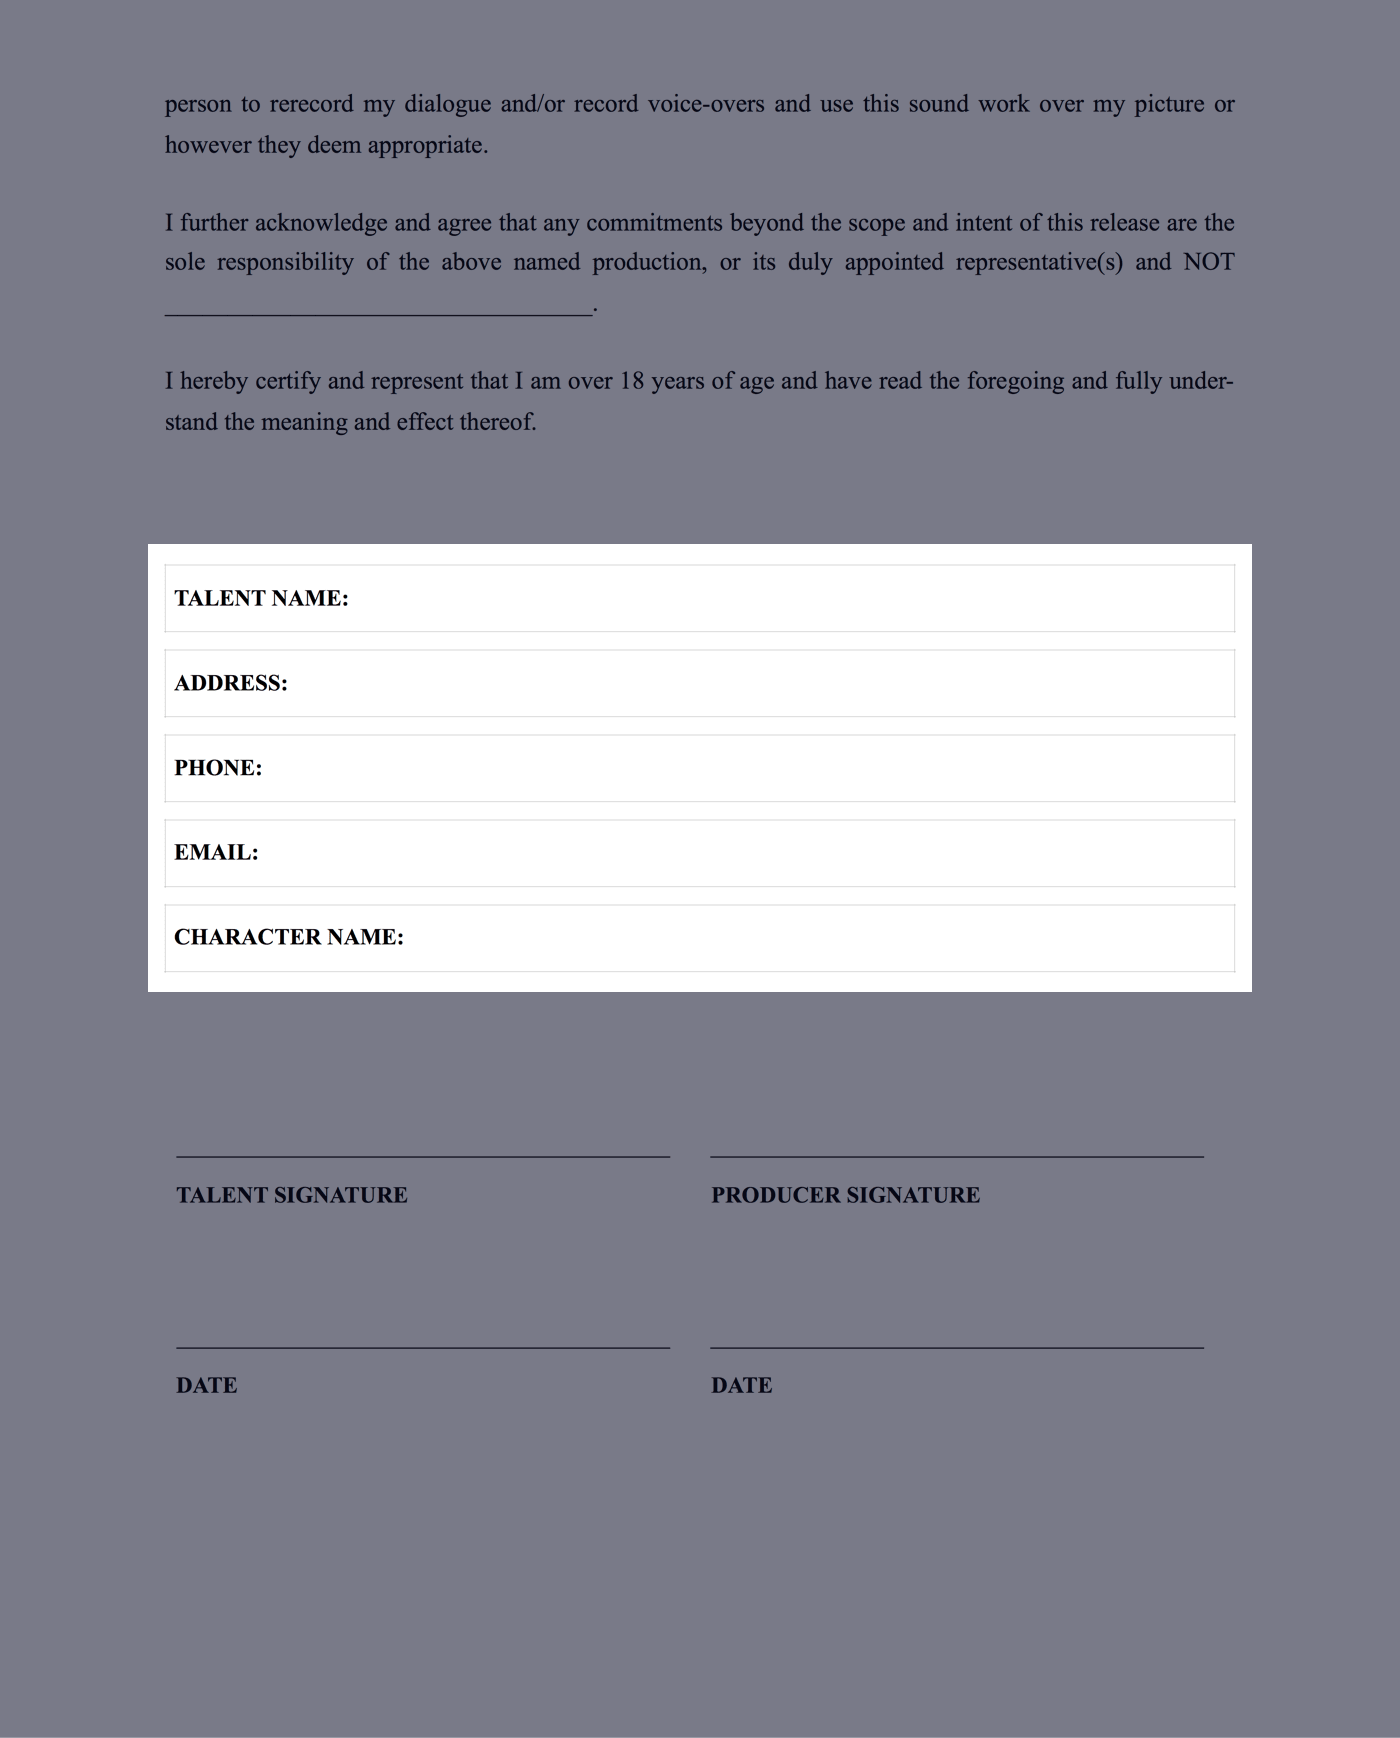 Film Actor Release Form Template - Fill in Variable Fields - StudioBinder